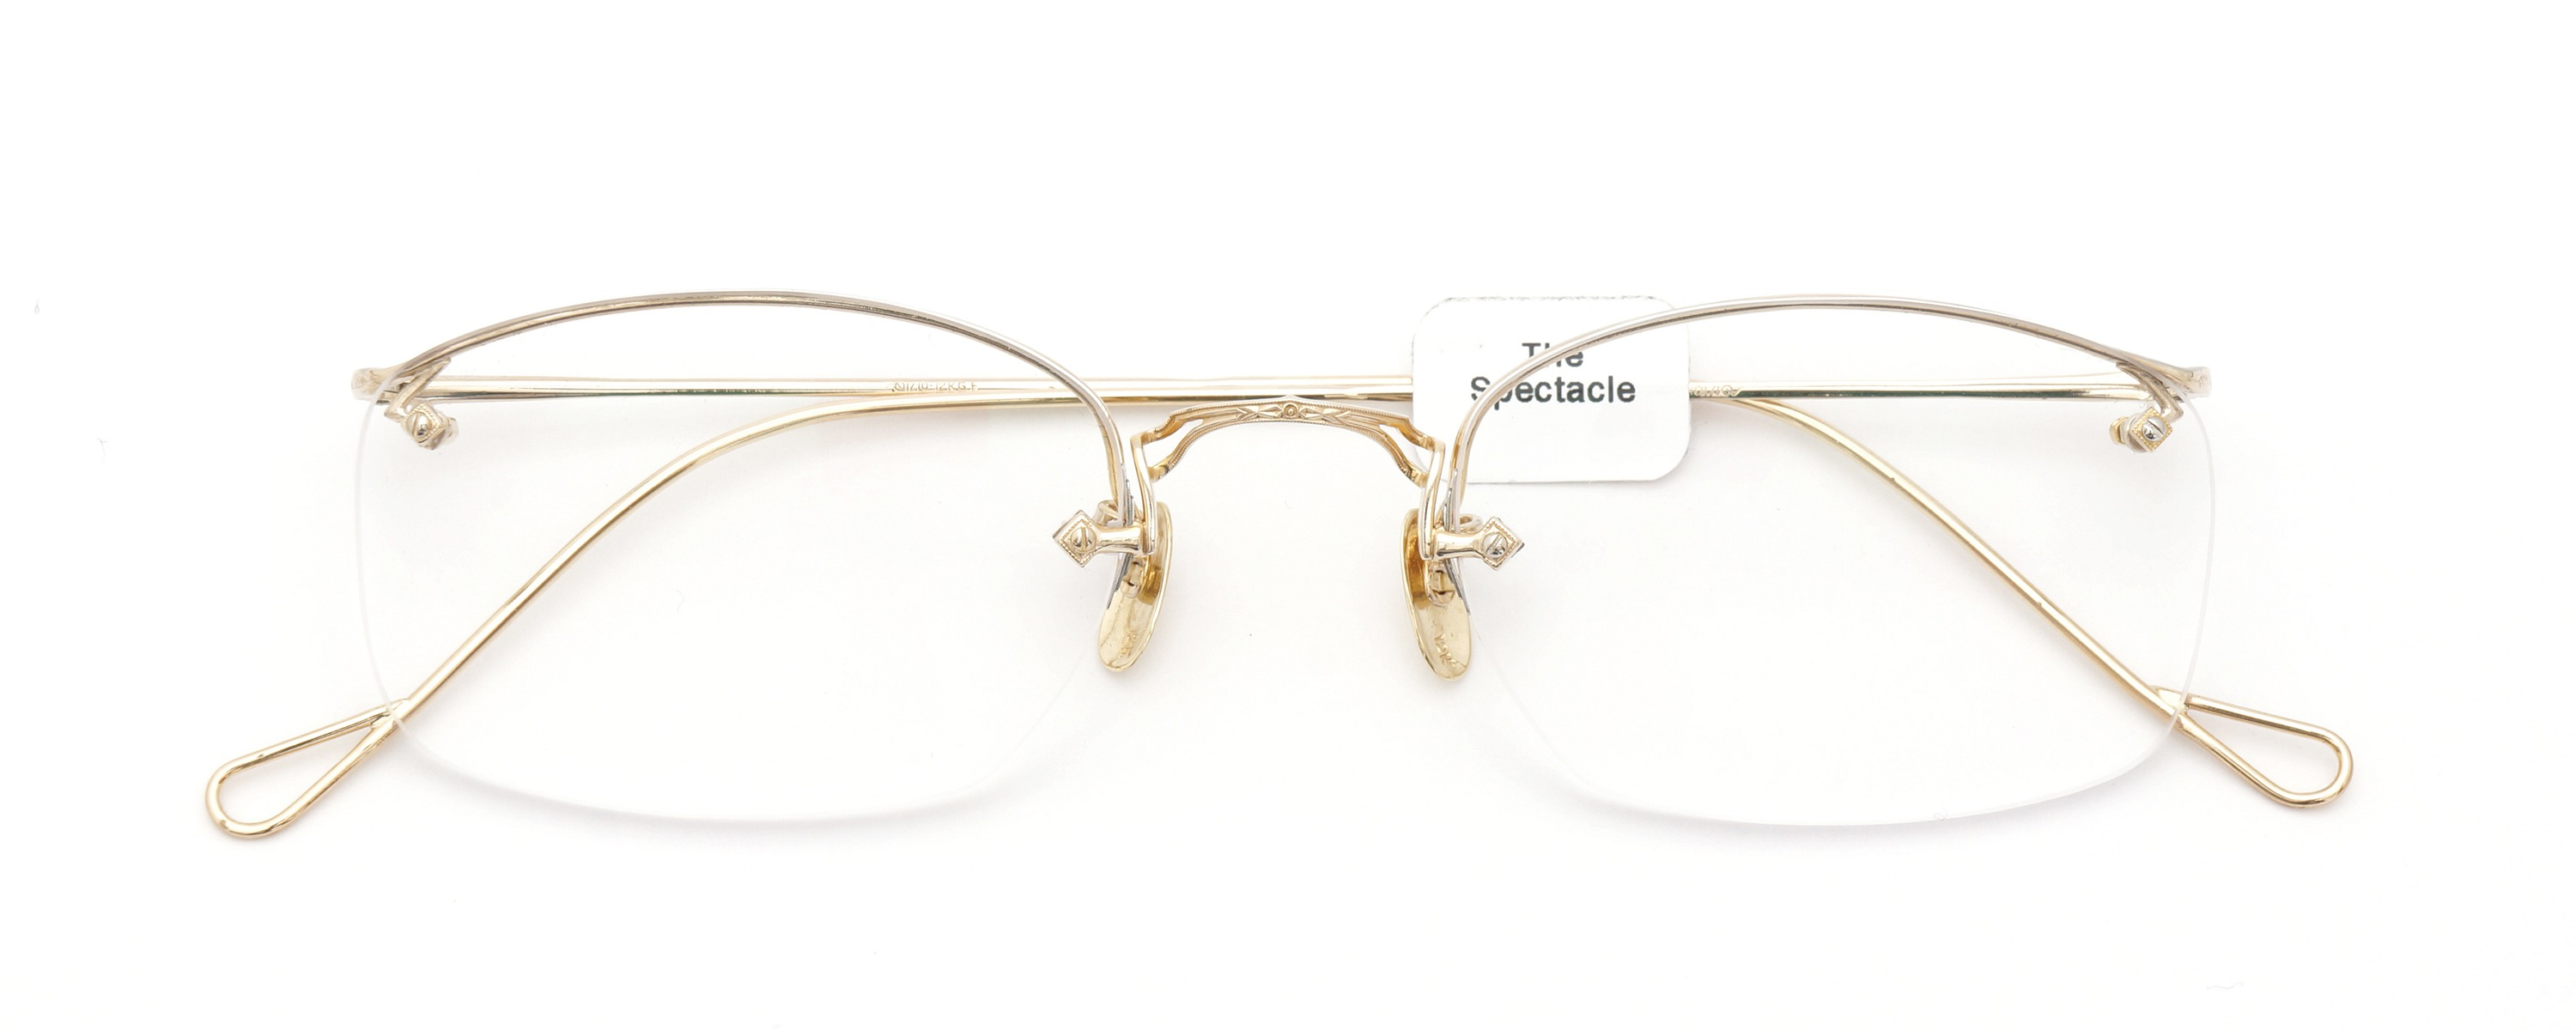 The Spectacle メガネ 1944 American Optical Everjax Ful-Vue lan YG 12kPads 51/22 イメージ2